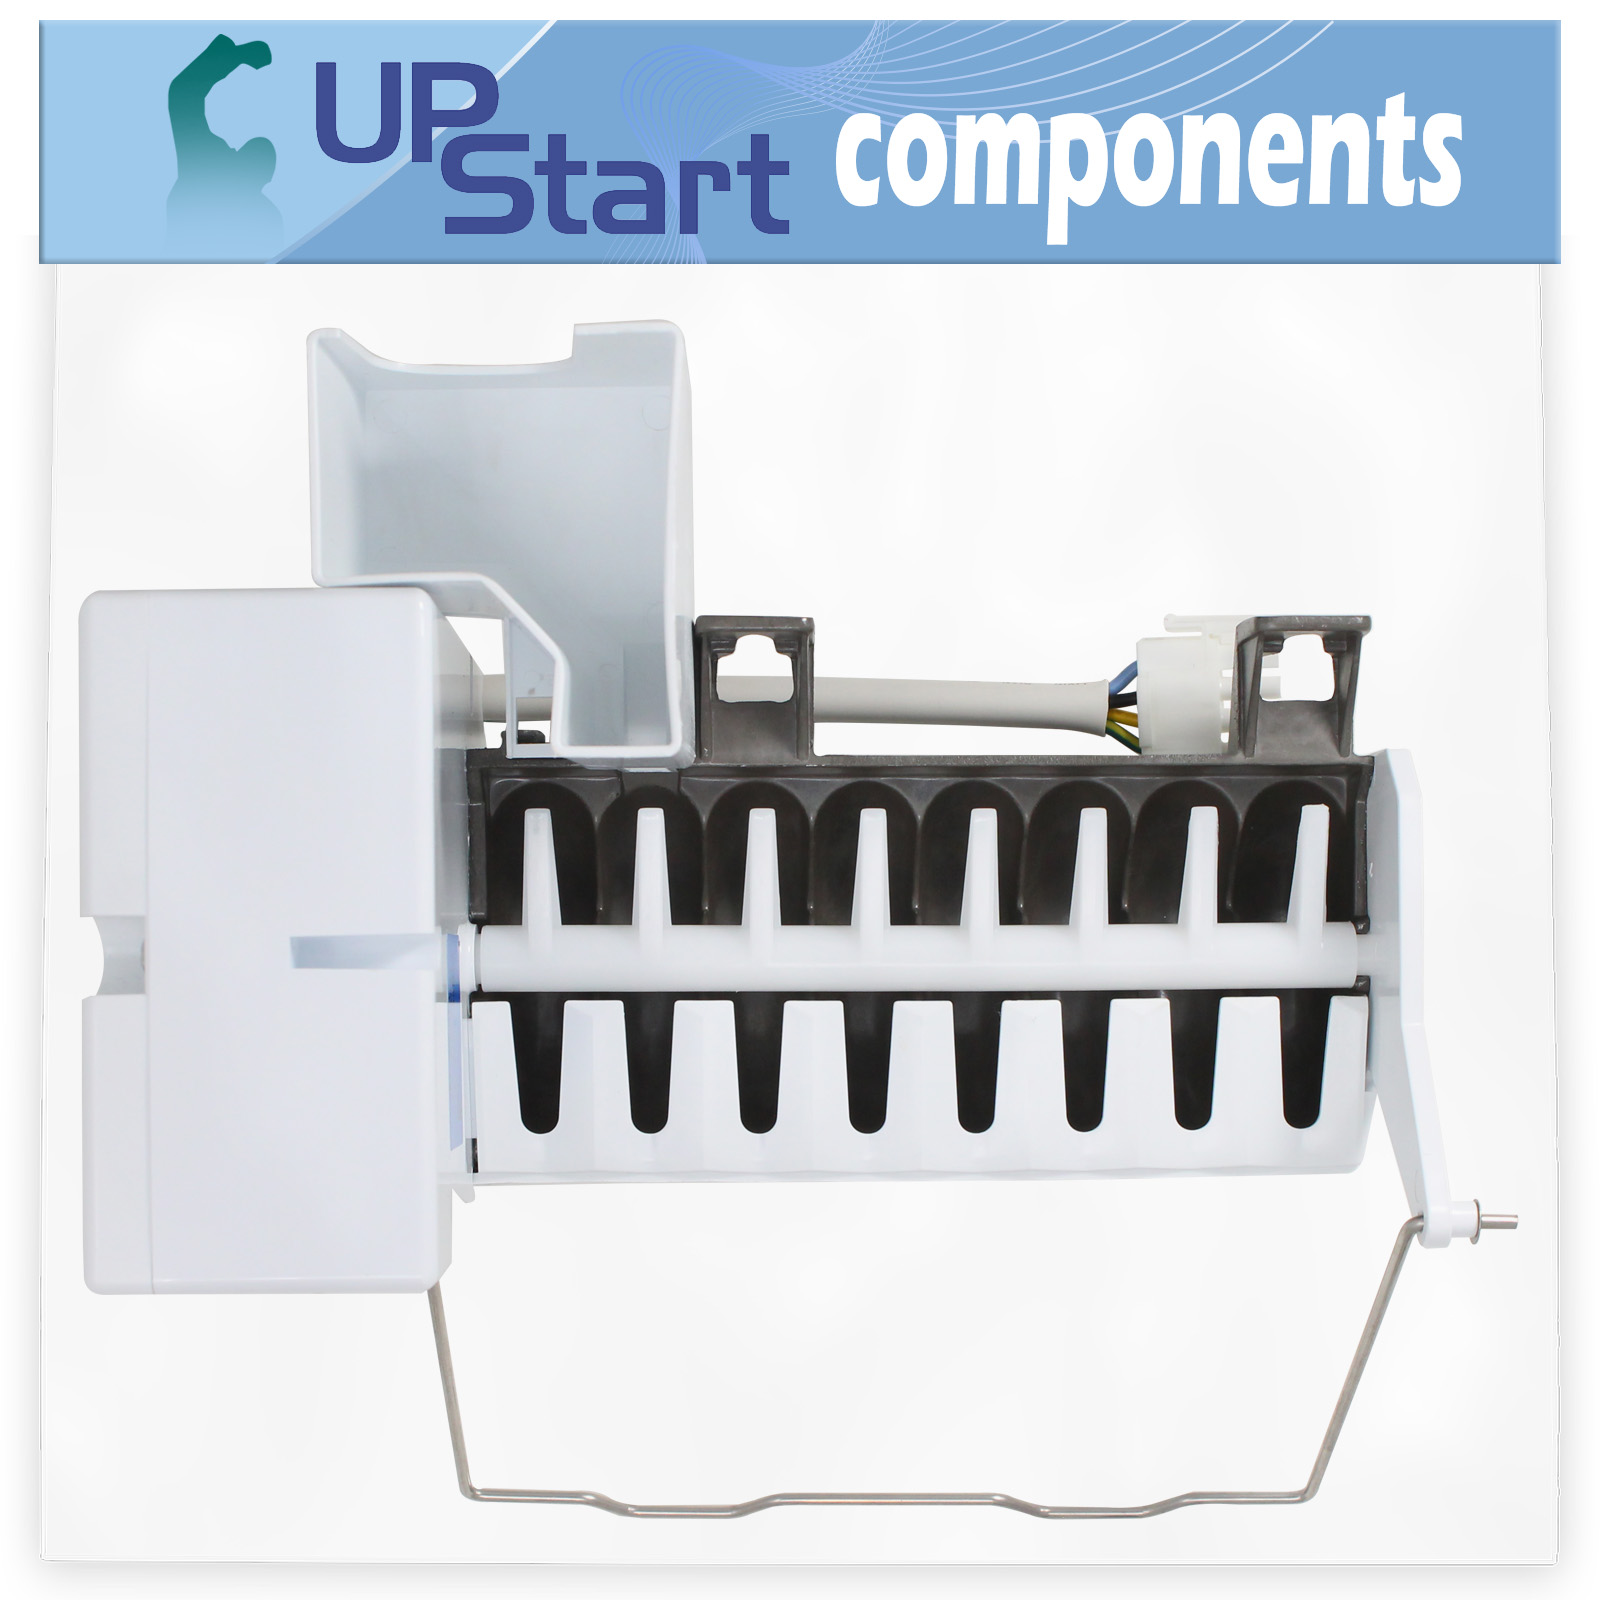 5303918344 Refrigerator Ice Maker Replacement for Frigidaire PLHS267ZDB2 Compatible with 241696501 241627701 Icemaker